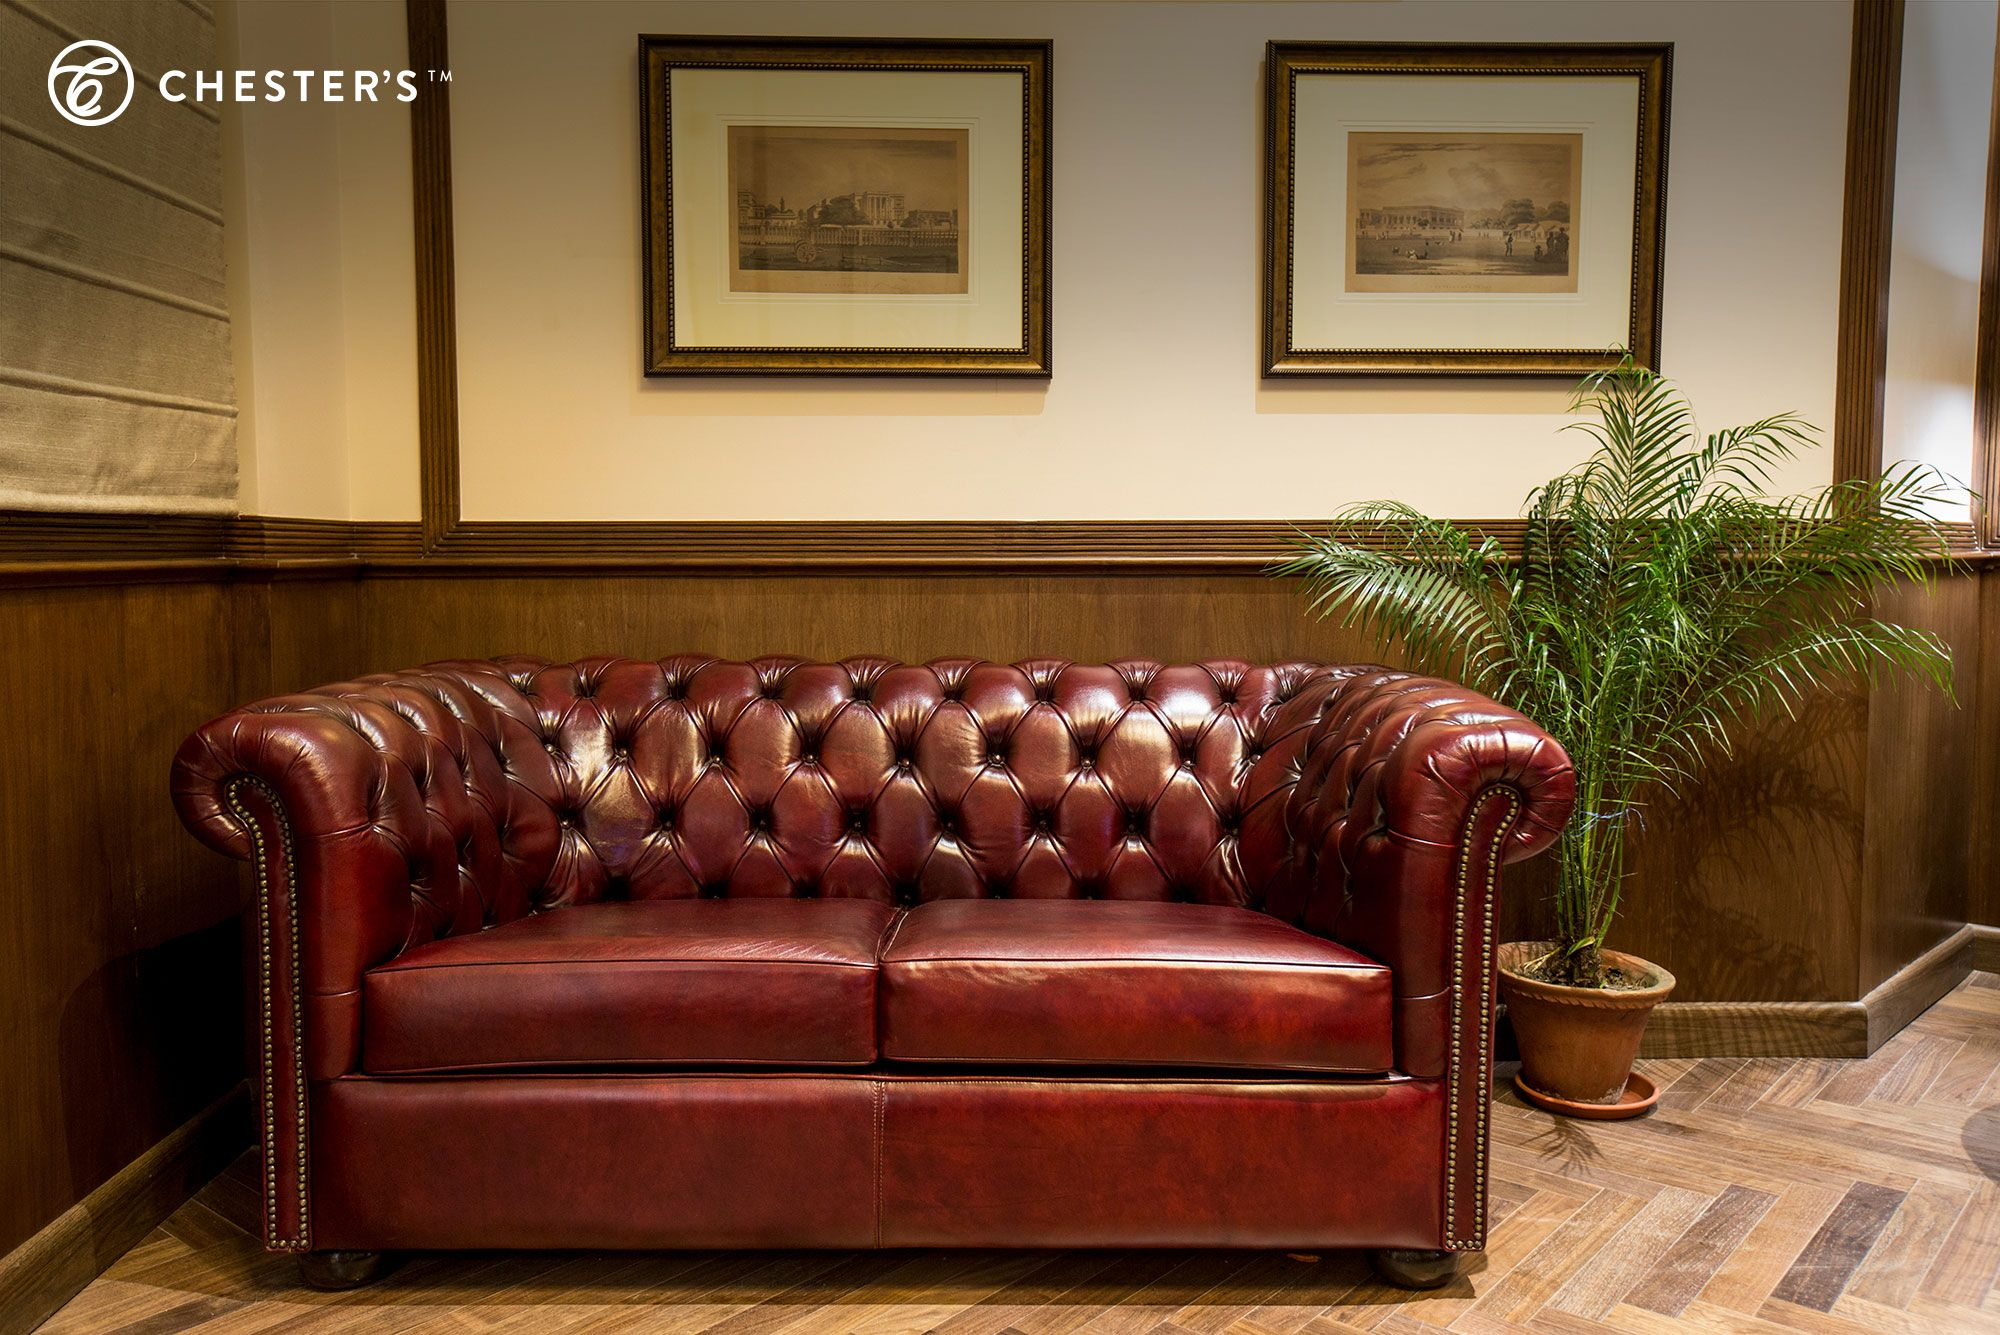 Sofas By Chester S For Places That Are Meant To Create A Distinguished Ambiance Sharing Some Pictures Of Chester S Leather Sofa Furniture Bespoke Furniture